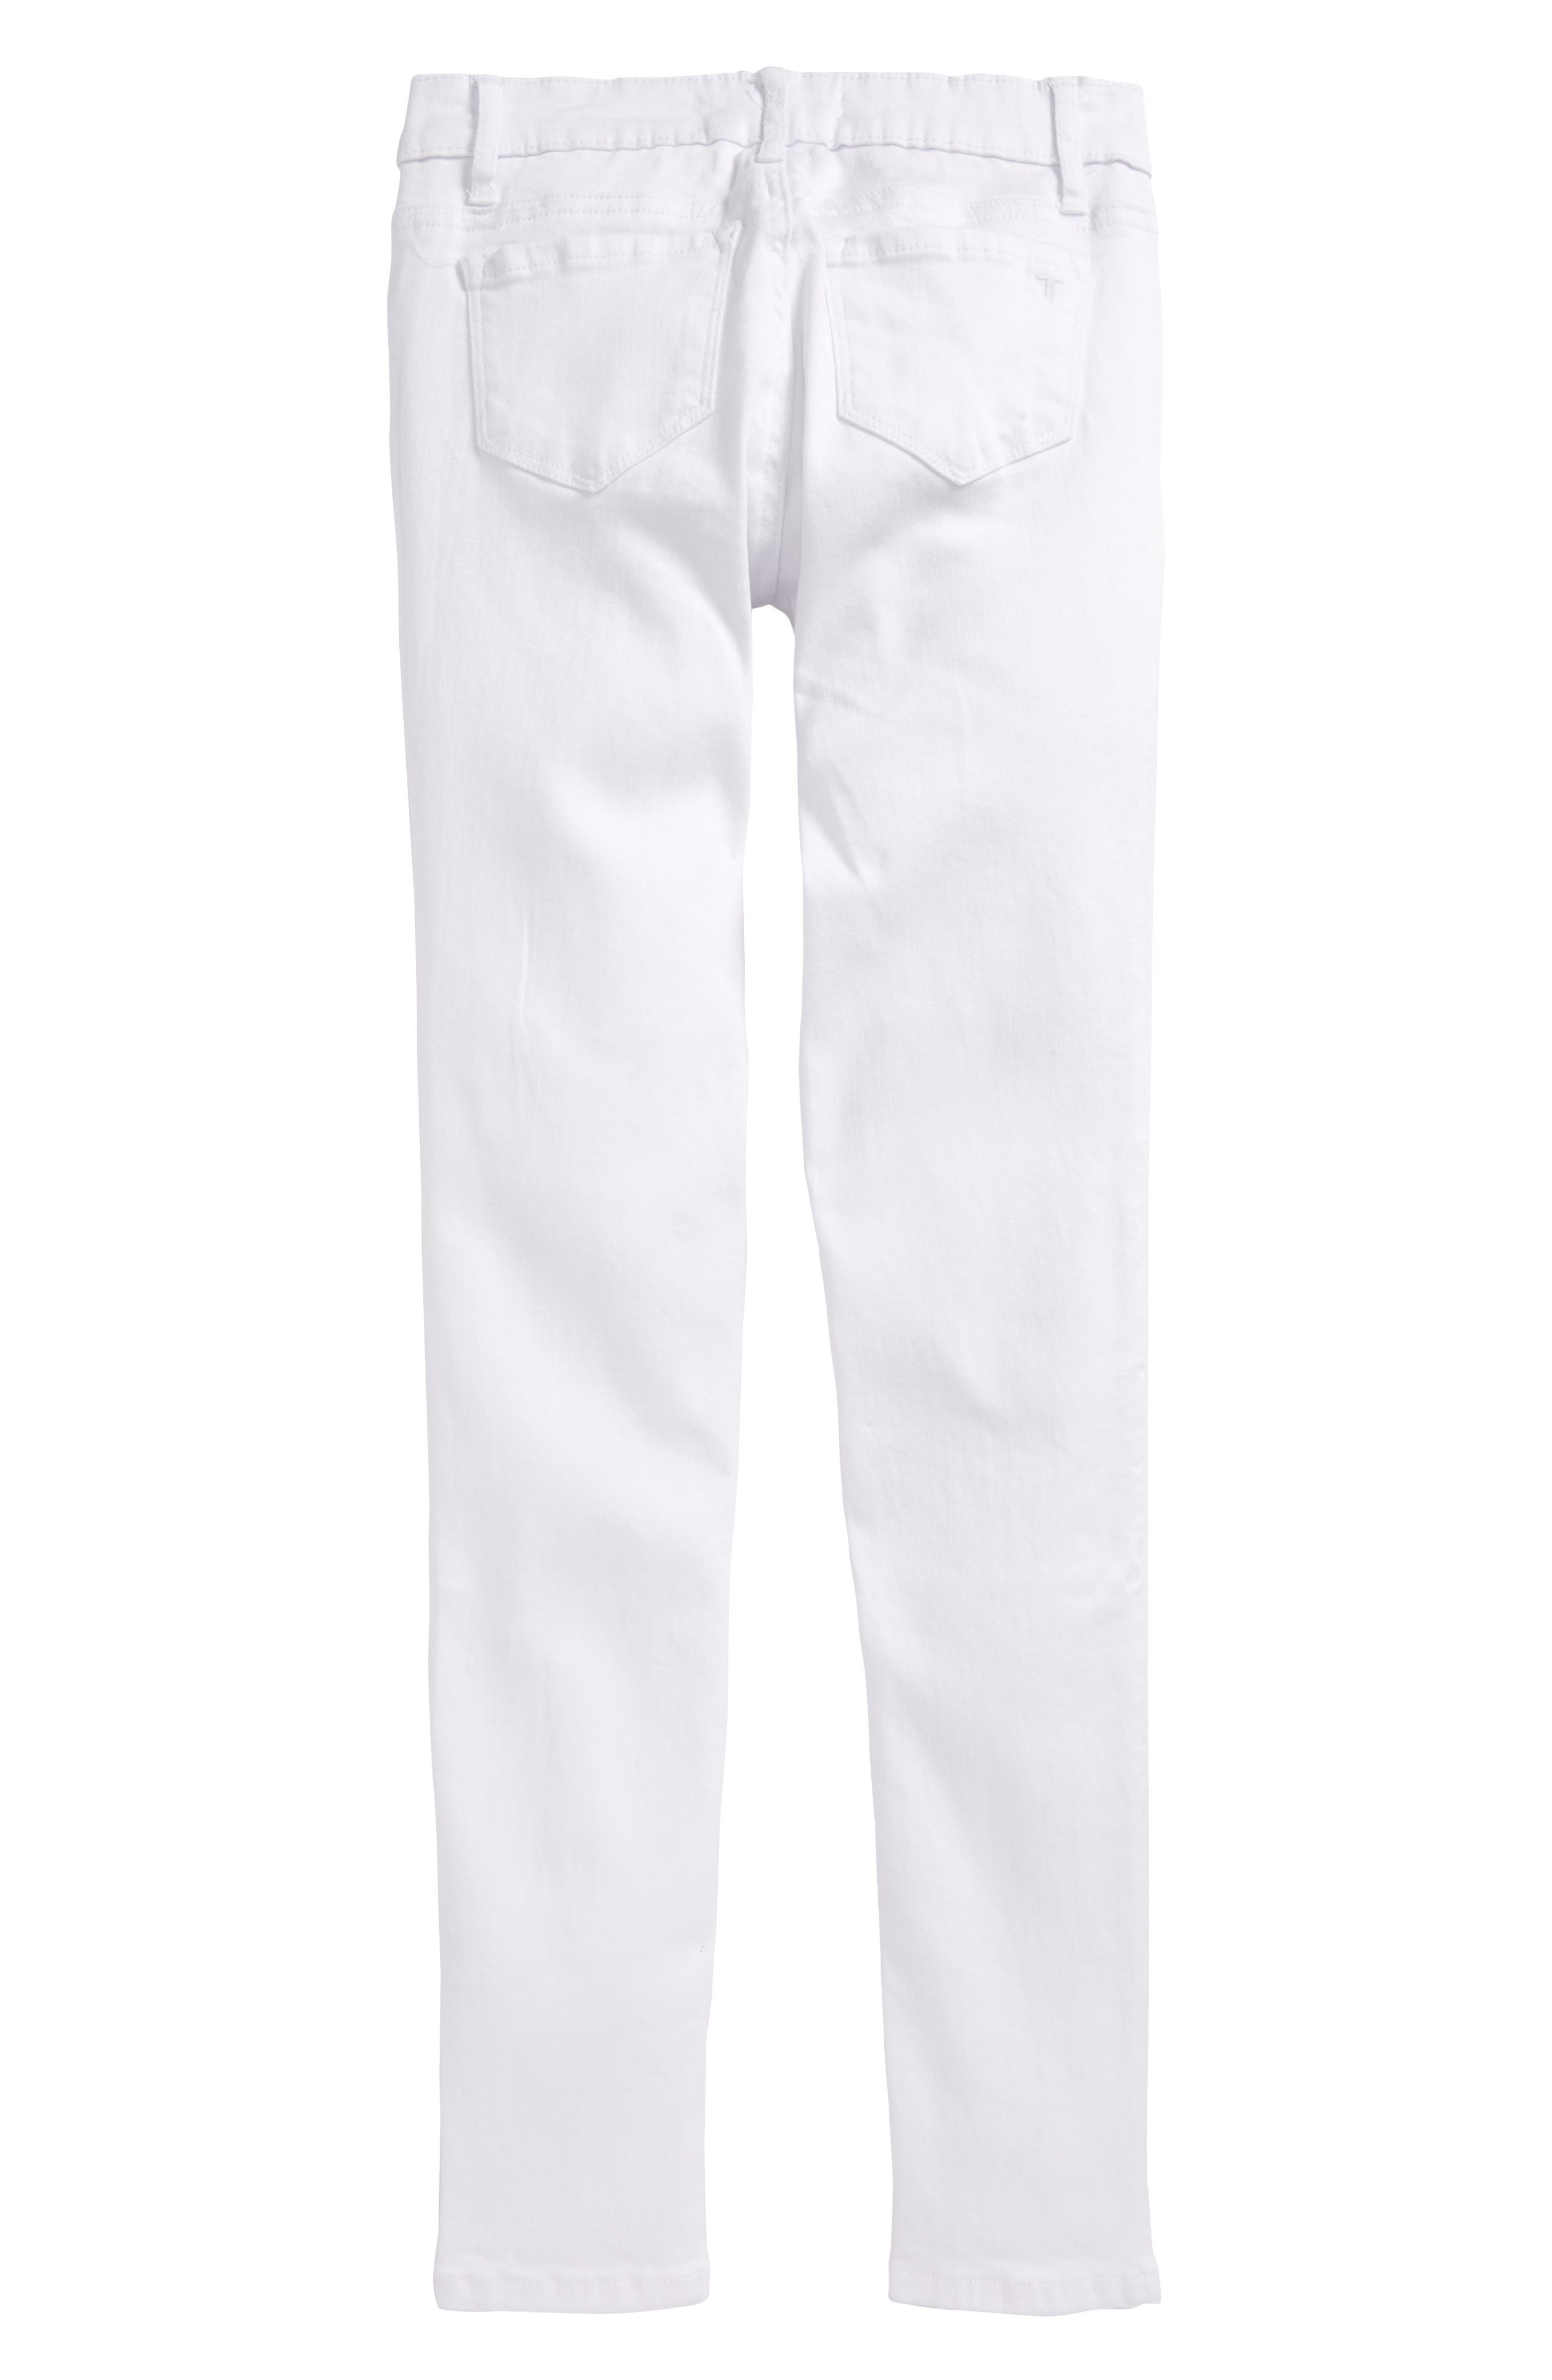 Deconstructed Skinny Jeans,                             Alternate thumbnail 2, color,                             White